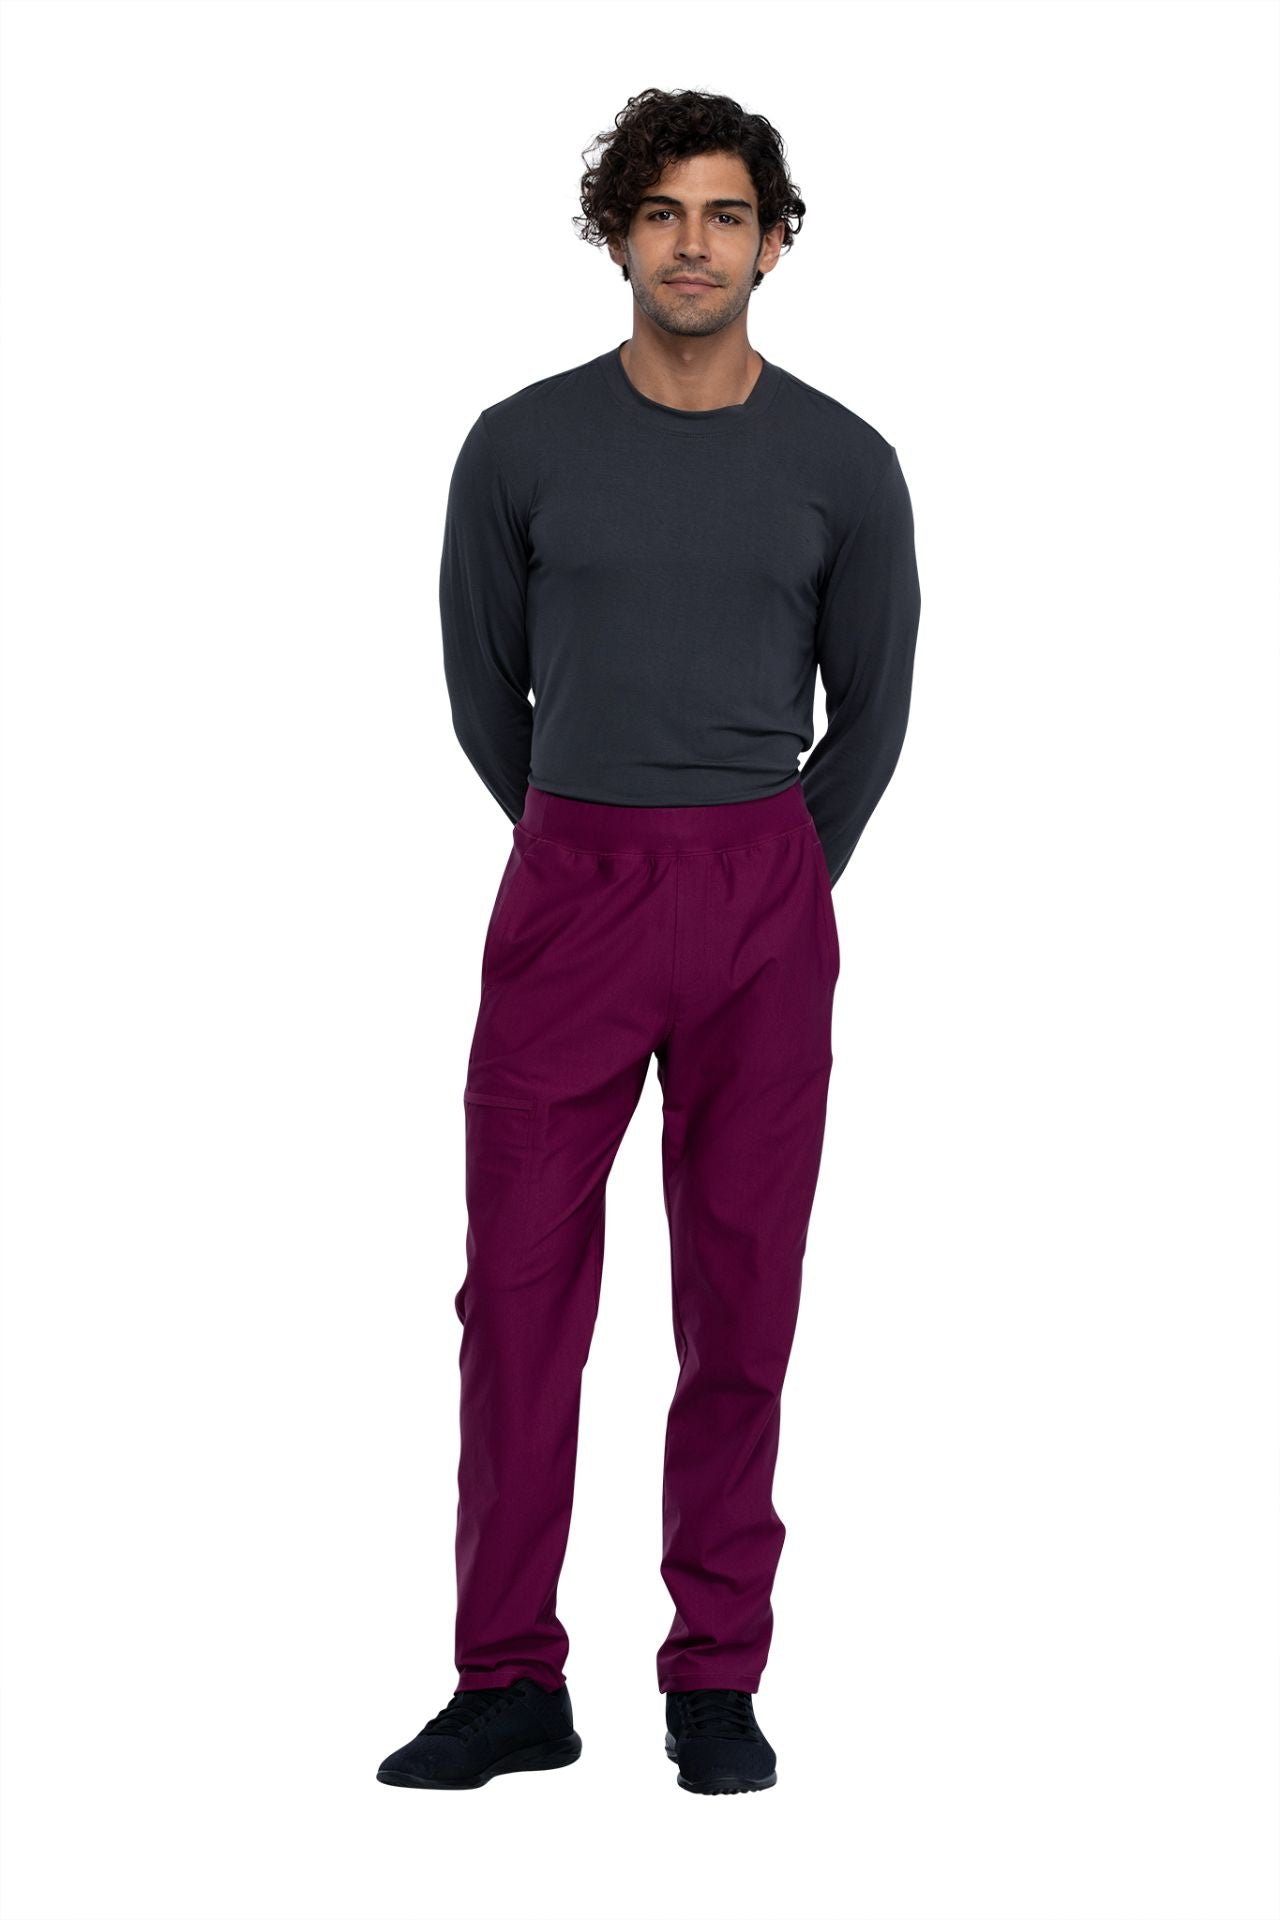 Cherokee Form CK185 Short Men's Tapered Leg Pull-On Pant